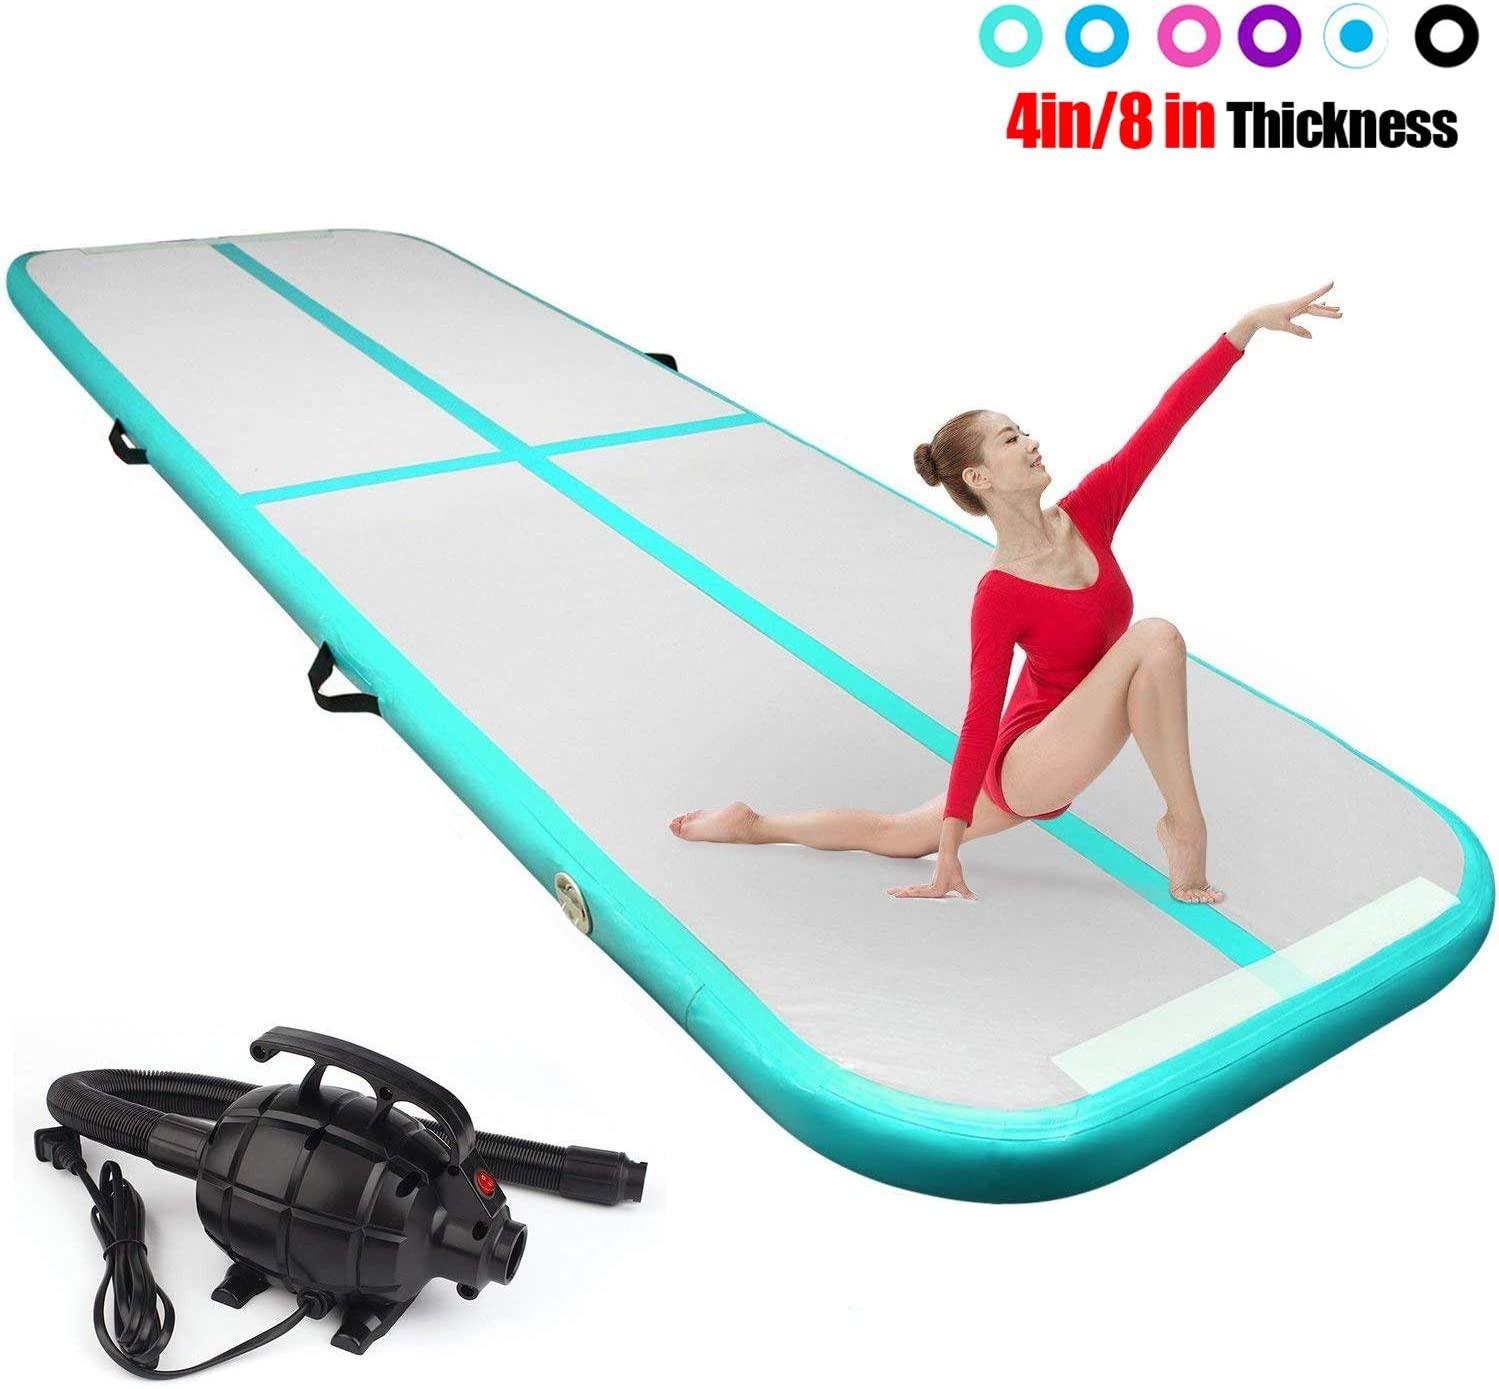 FBSPORT 8inches/4 inches Thickness airtrack mat,26ft/23ft/20ft/17ft/13ft/10ft Tumble Track air mat for Gymnastics Training/Home Use/Cheerleading/Yoga/Water with Electric Pump